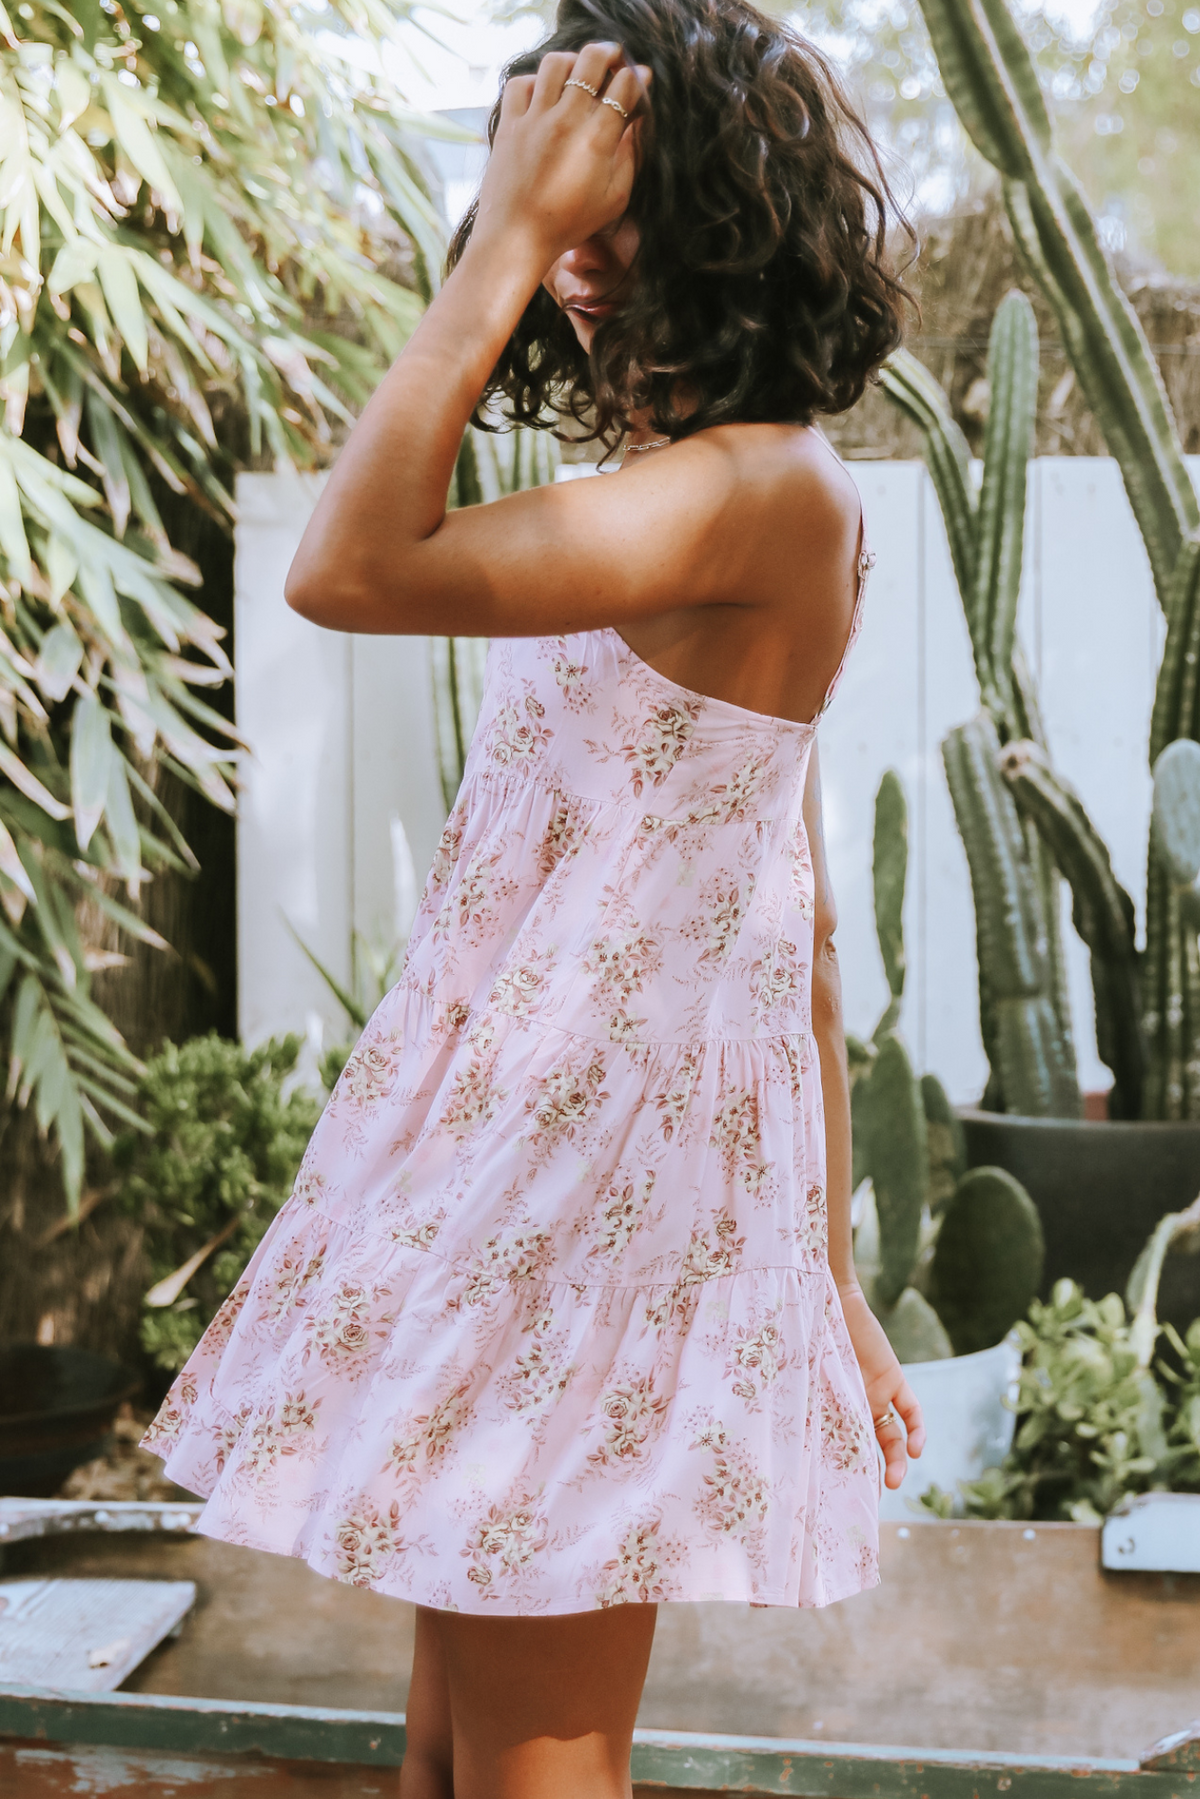 Rose Tiered Mini Dress Love Story